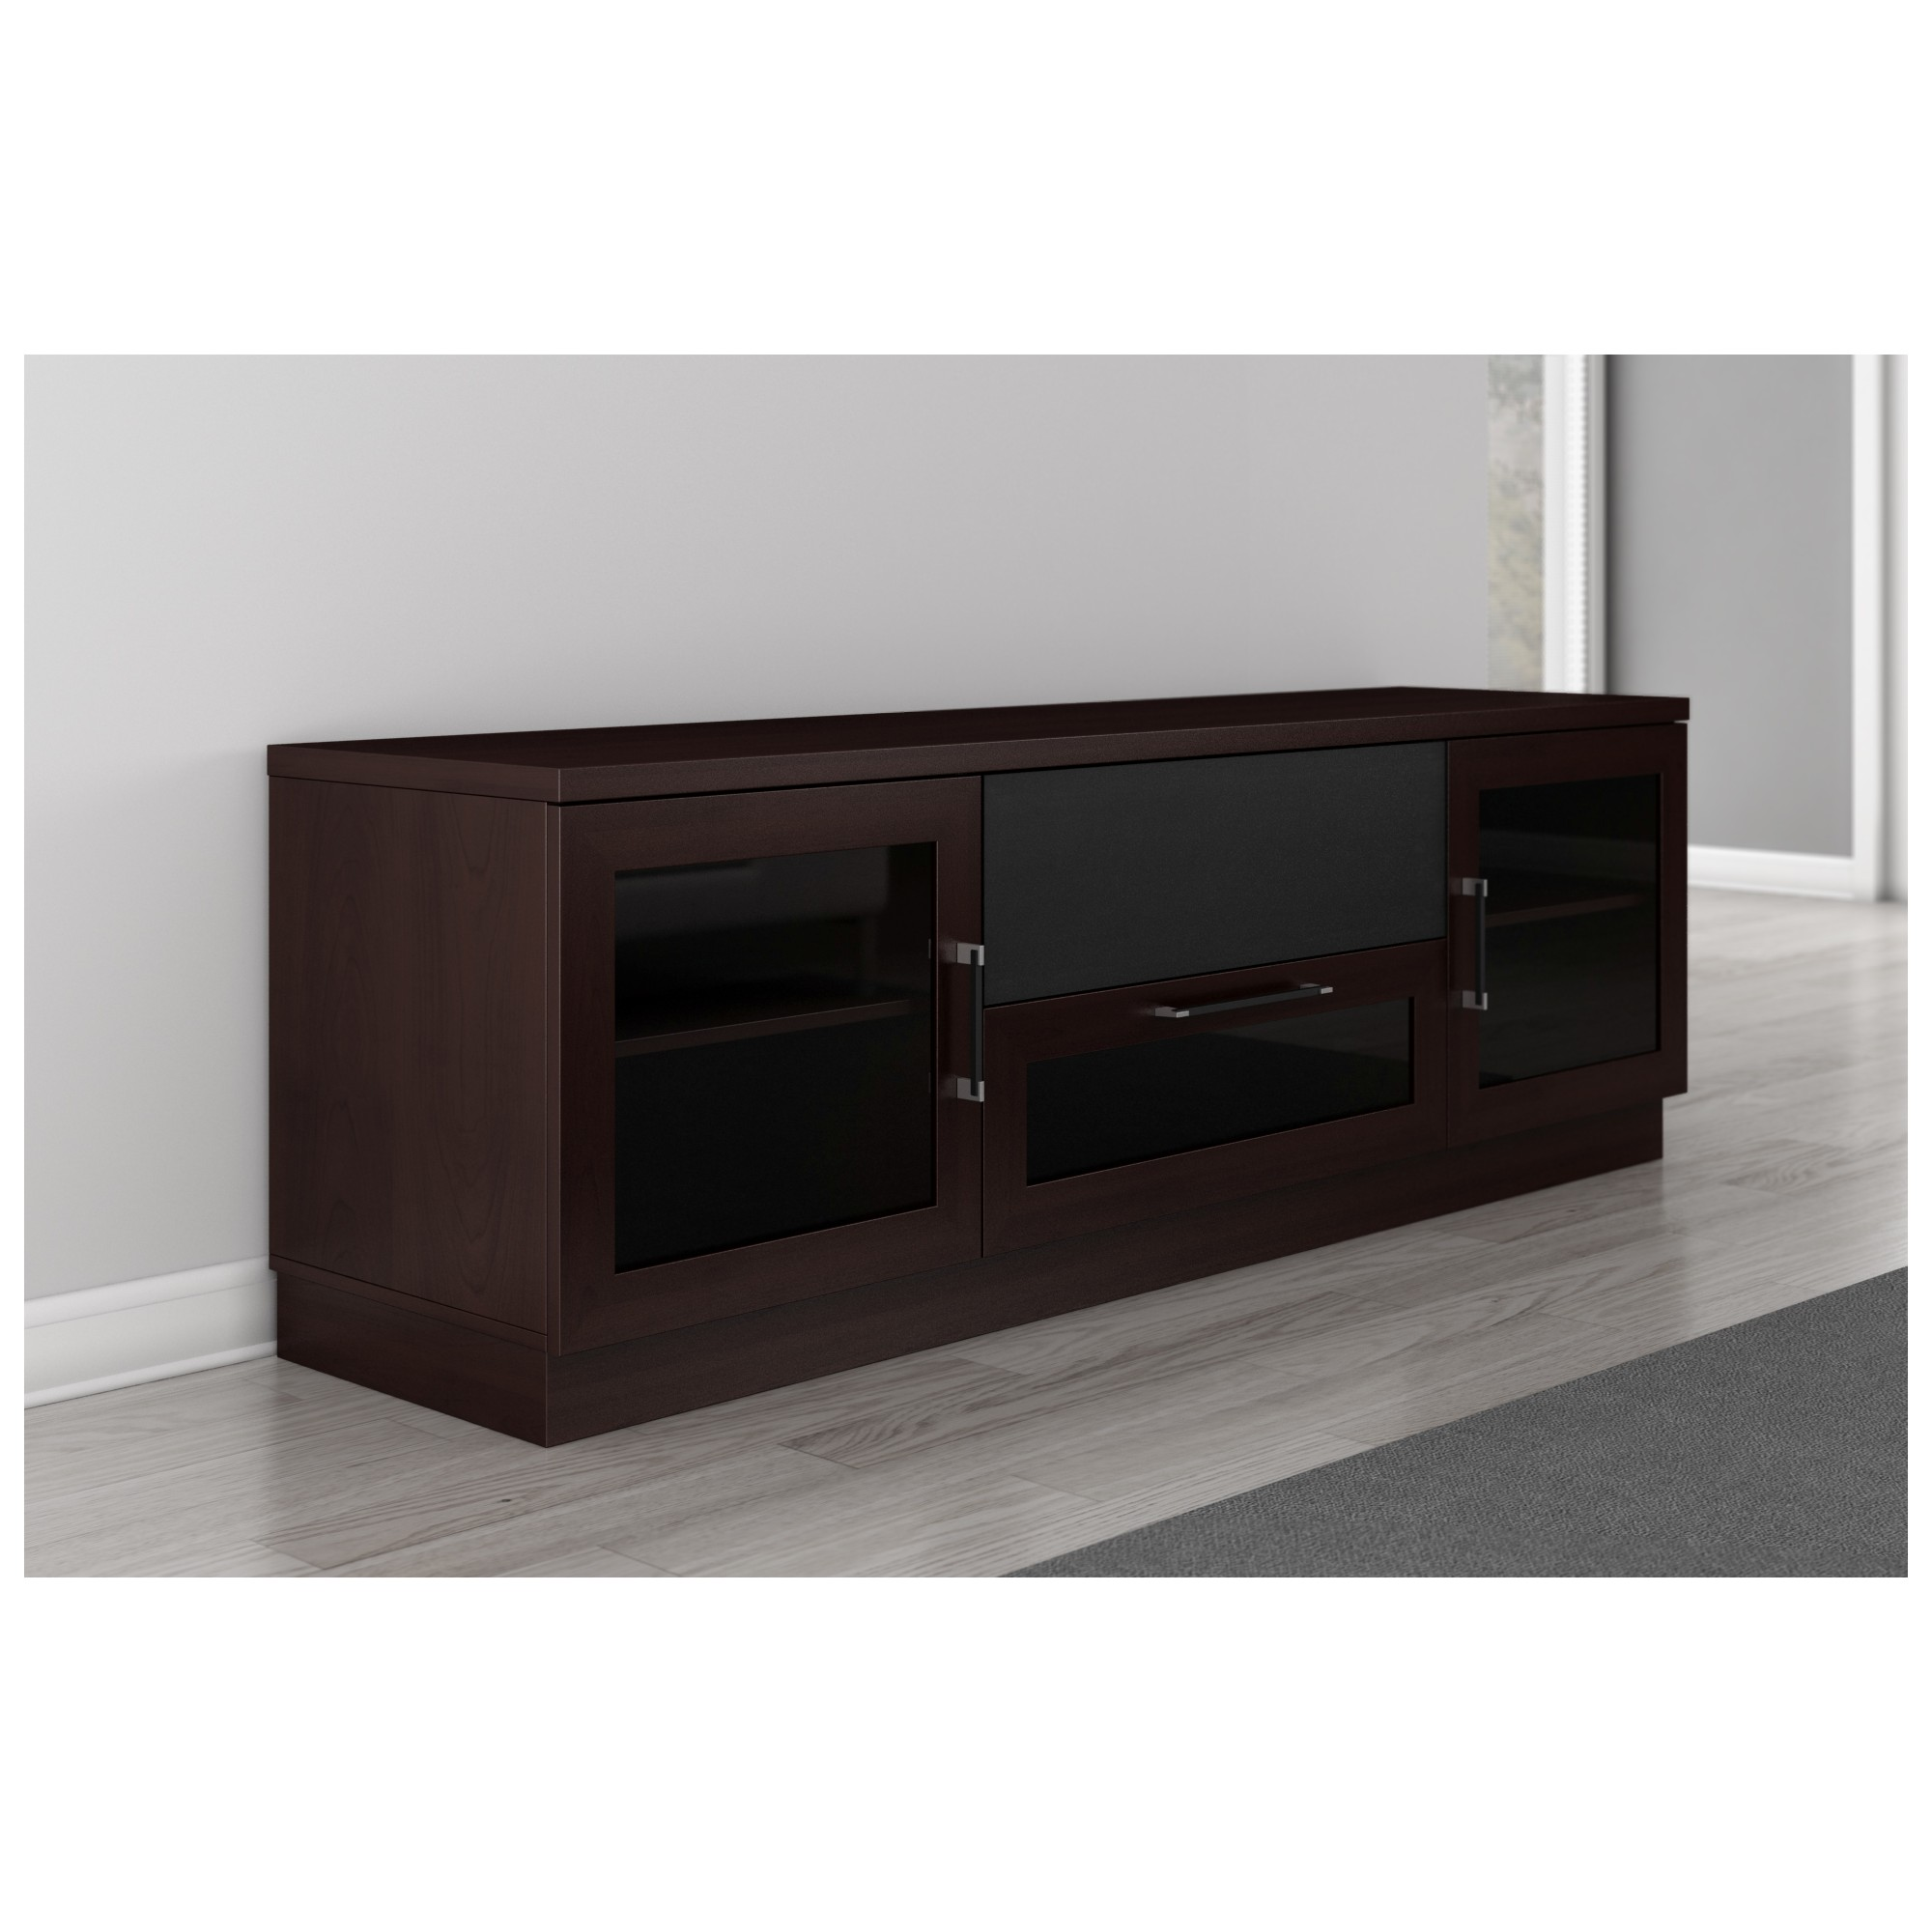 furnitech ftccw  tv stand contemporary media cabinet w  -  tv stand contemporary media cabinet w center speaker opening in wenge